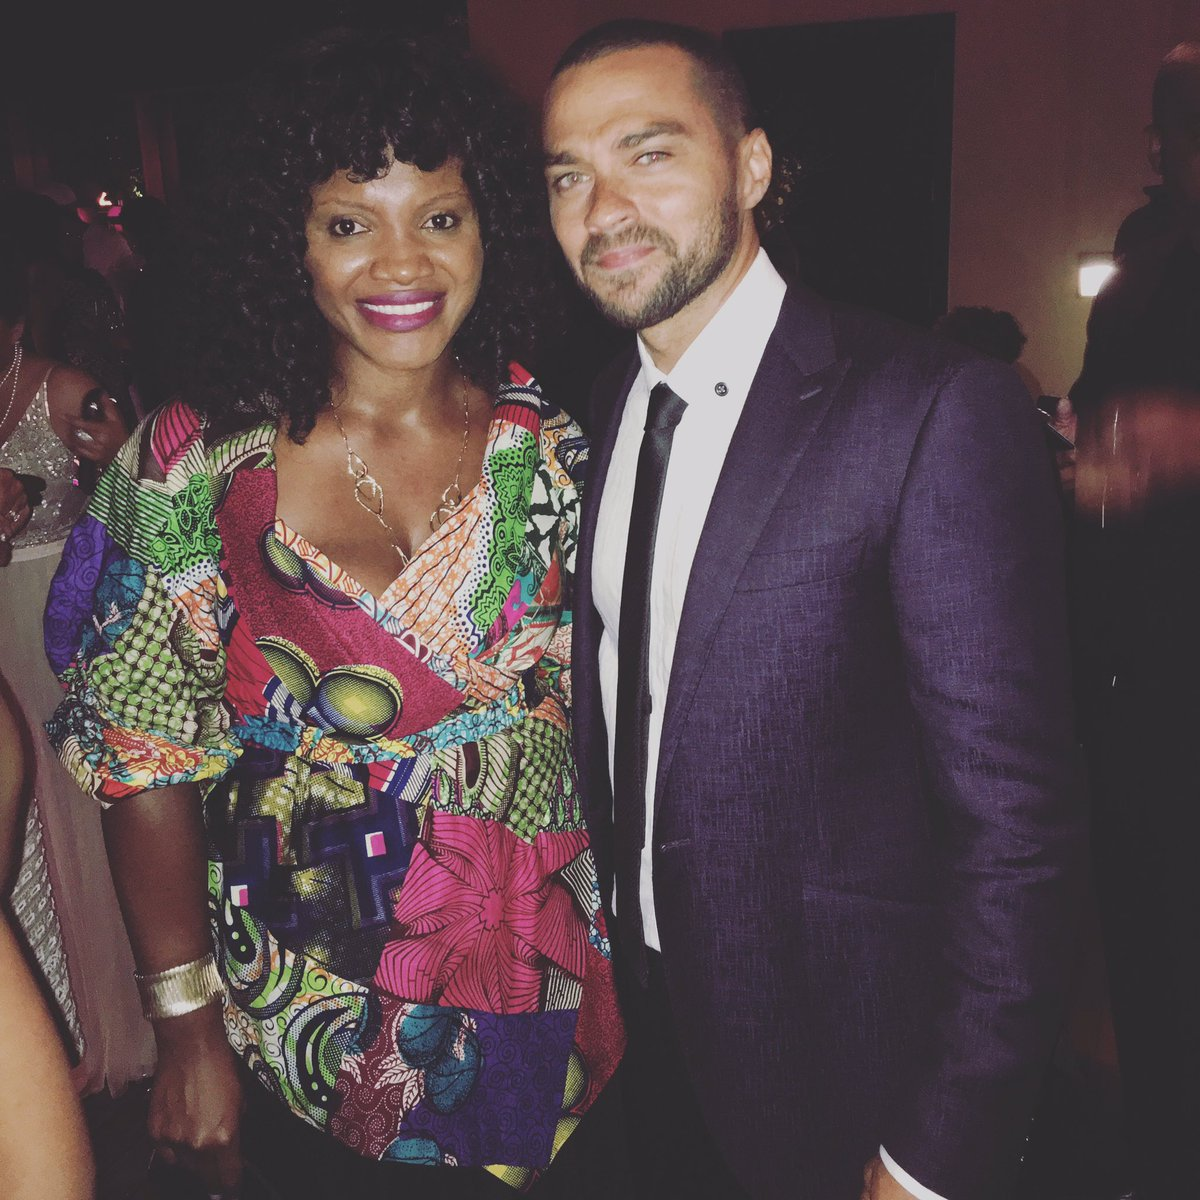 #bae @iJesseWilliams @NMAAHC #APeoplesJourney https://t.co/7GyAuL88Iq